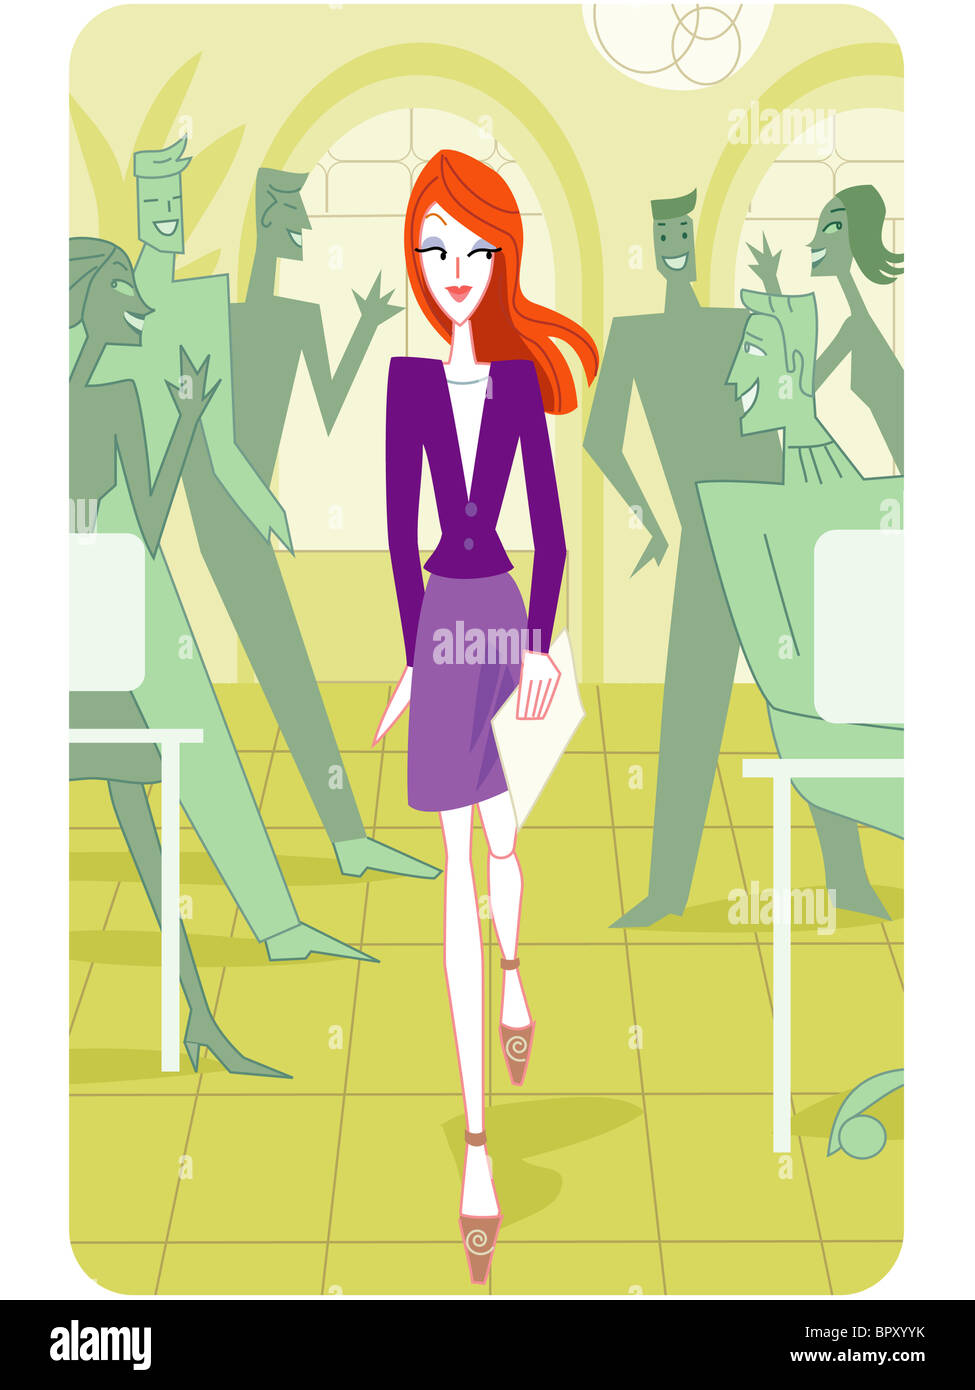 A pretty woman walking pass a group of people - Stock Image